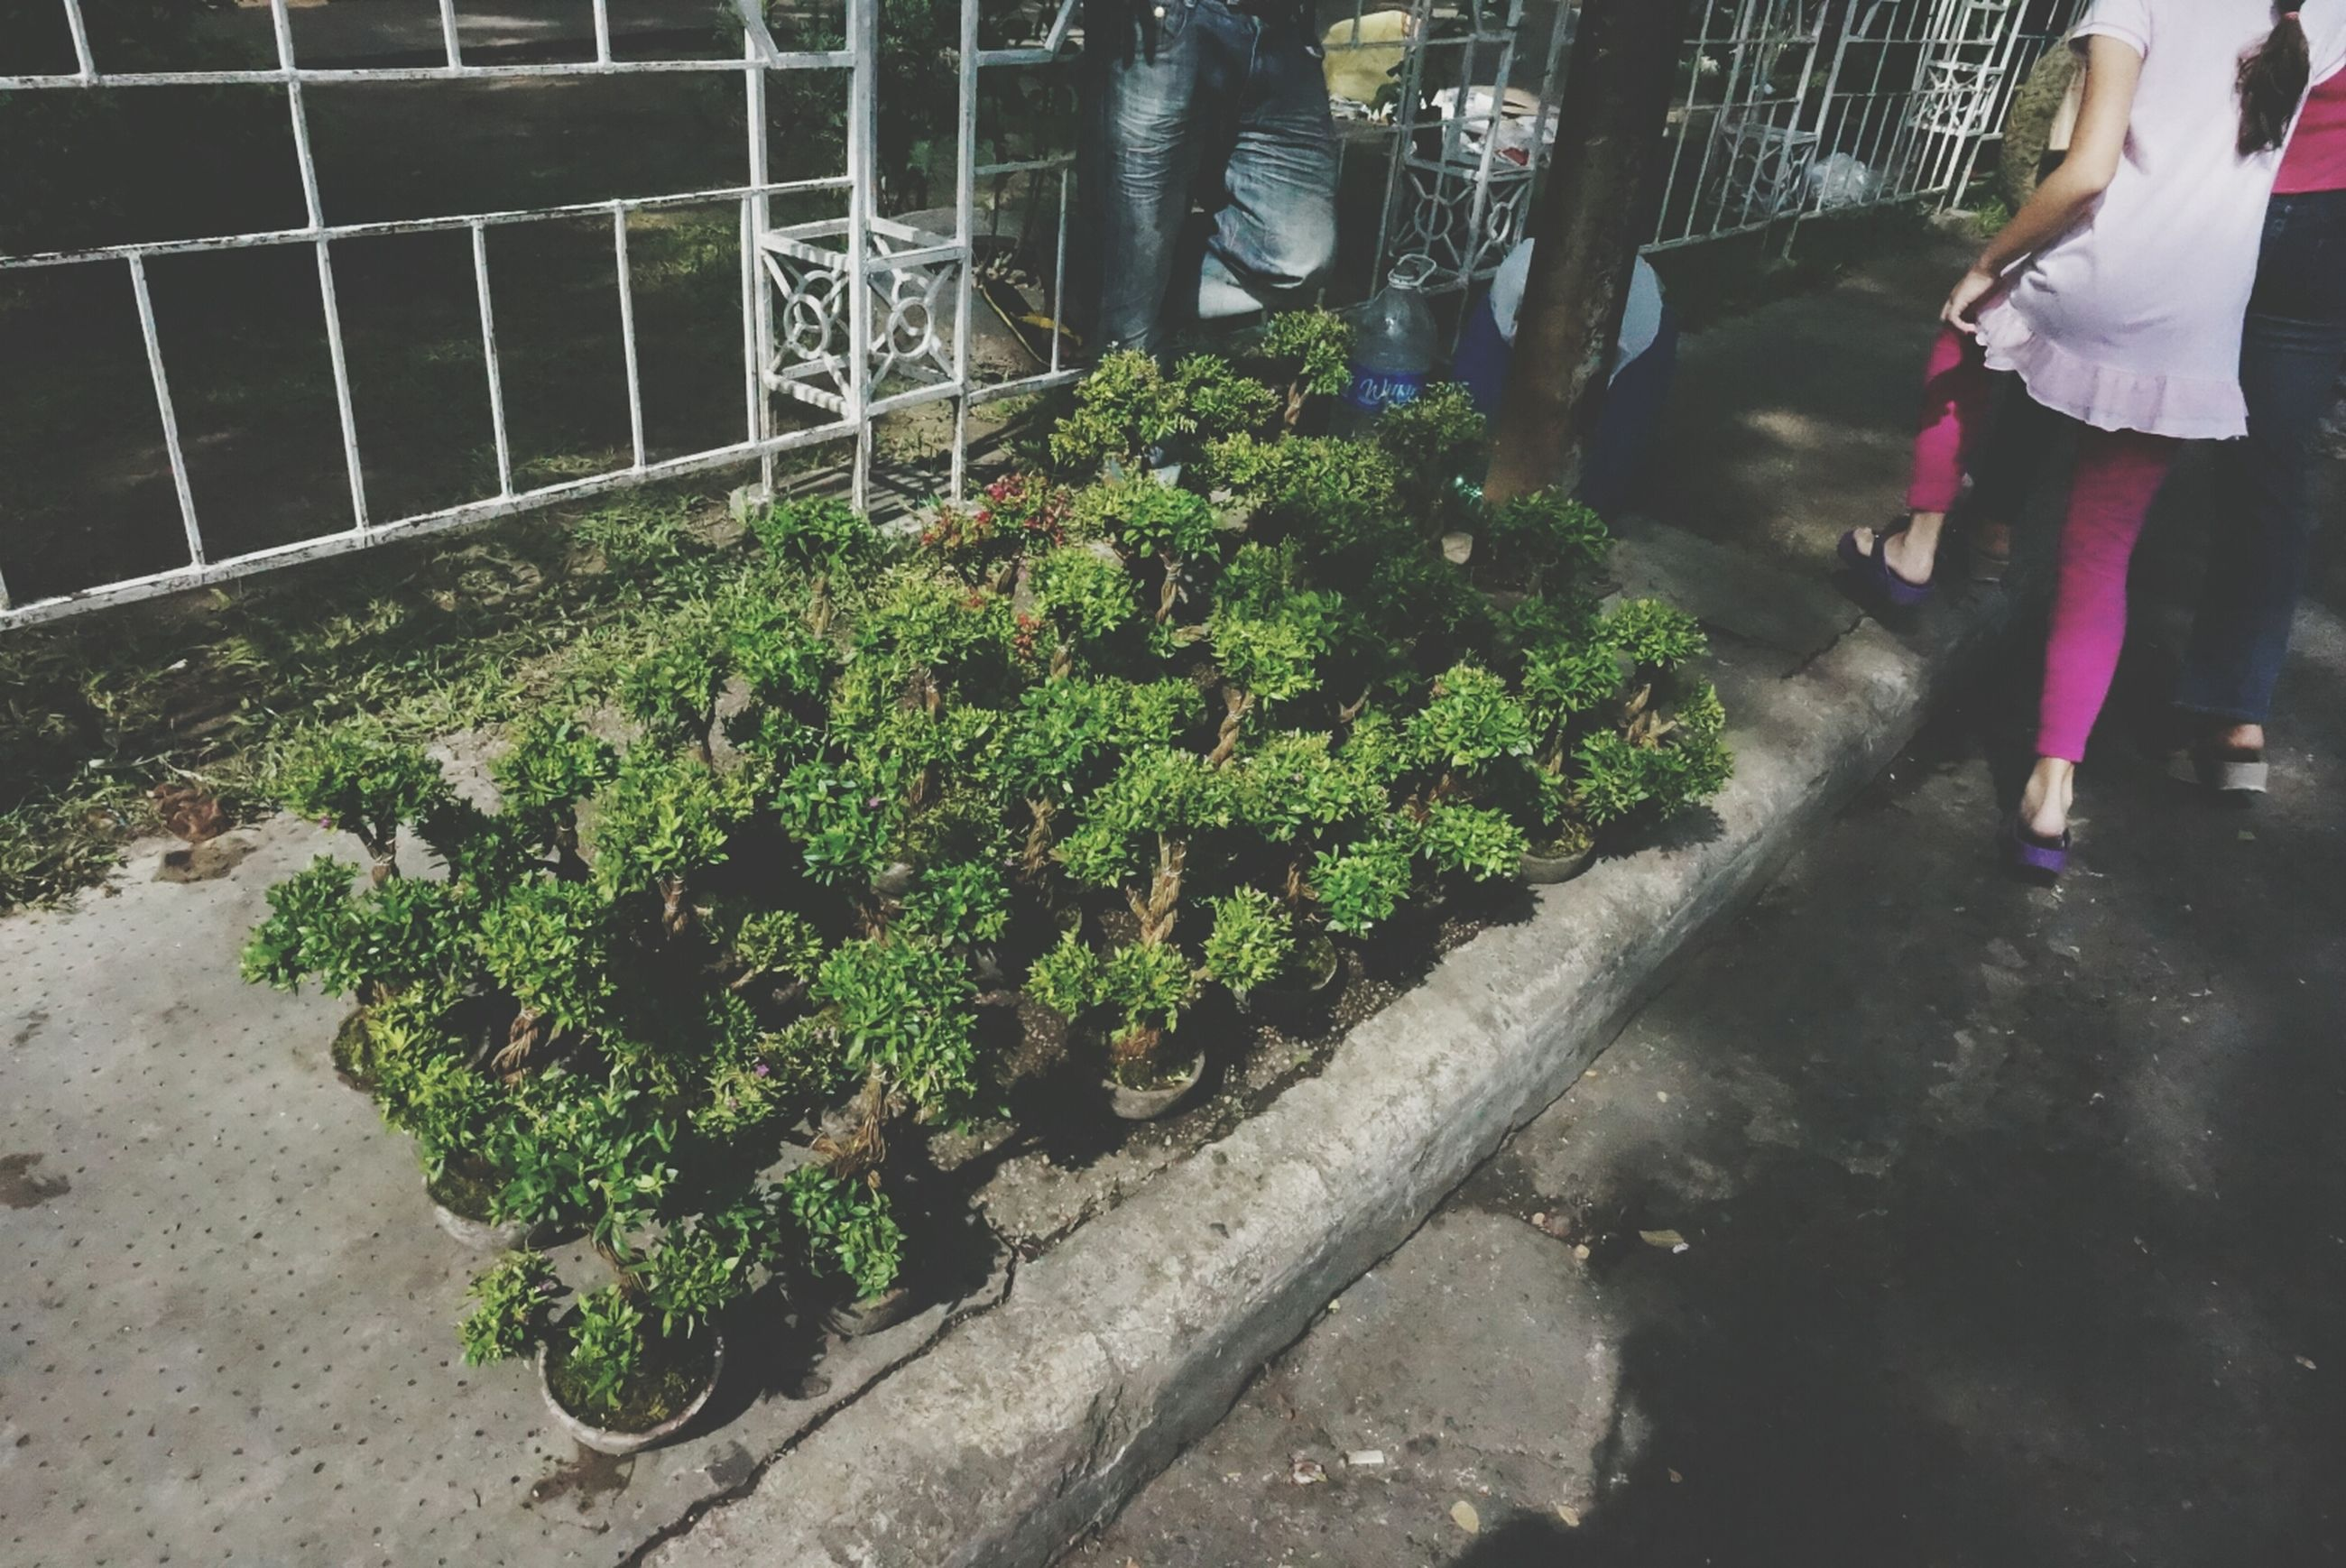 lifestyles, men, leisure activity, low section, person, walking, plant, standing, street, outdoors, high angle view, unrecognizable person, growth, green color, day